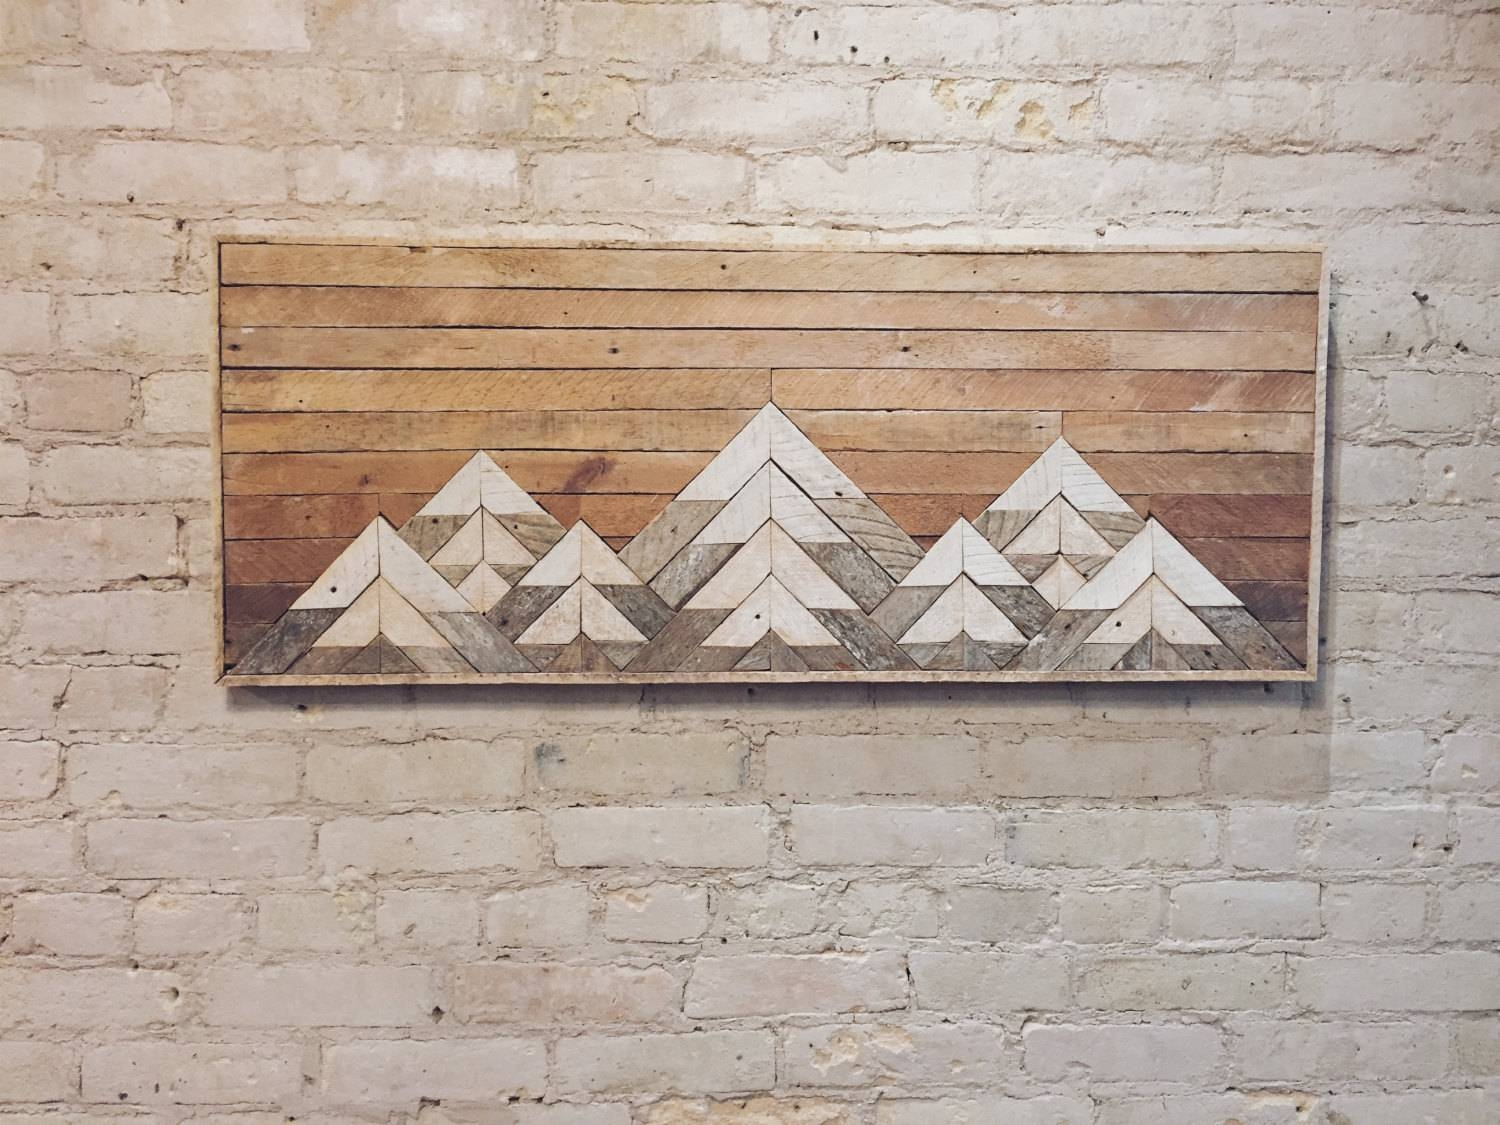 Reclaimed Wood Wall Art, Wall Decor, Twin Headboard, Lath Pertaining To Recent Wood Wall Art (View 13 of 25)